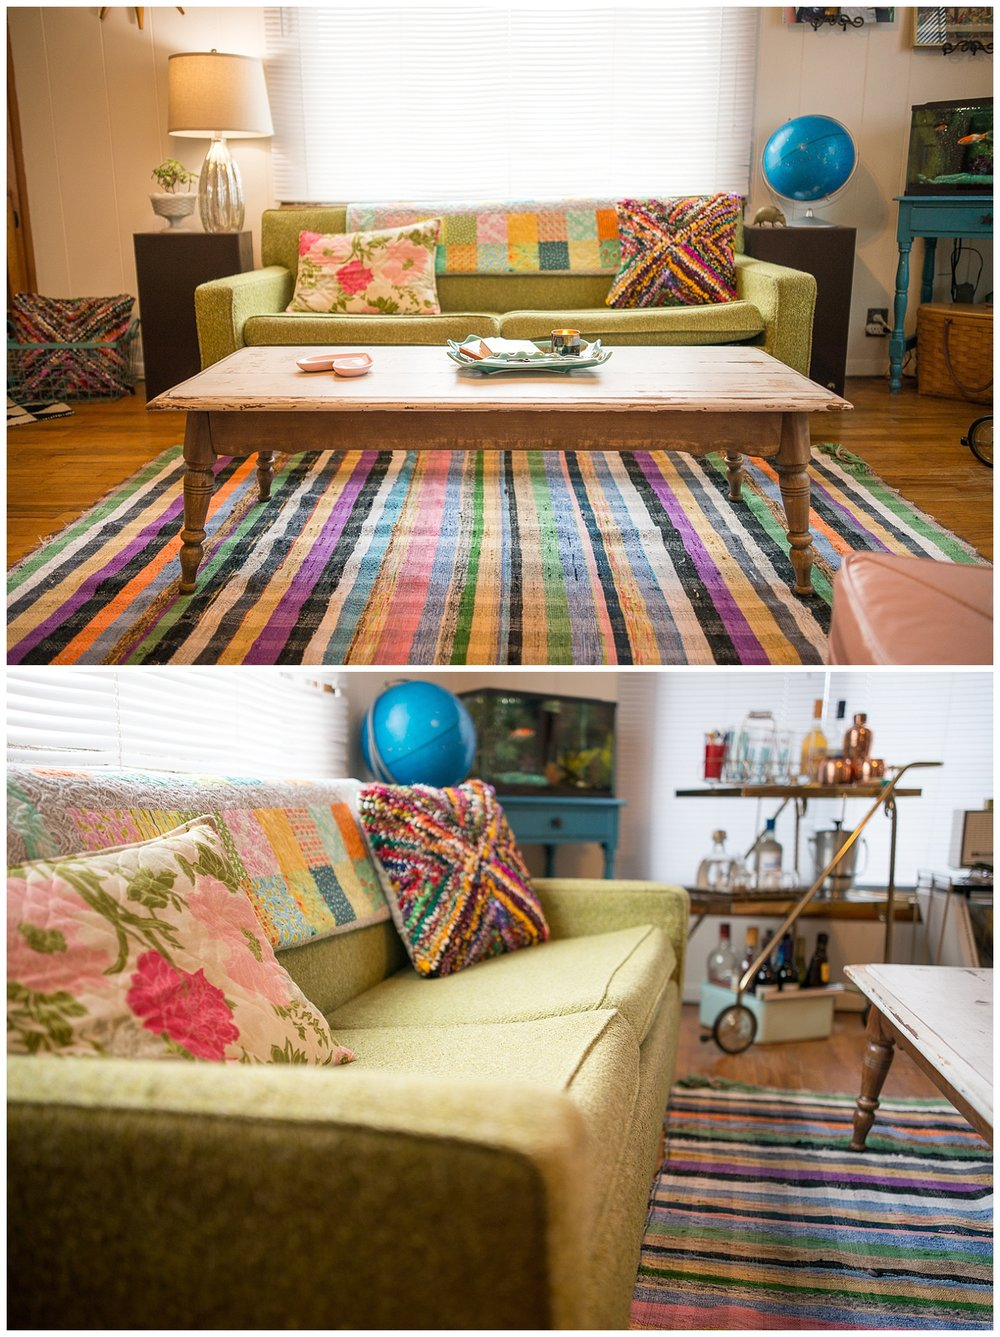 Walk into the Wilson home and you can't help but smile at all of the color and light. Their love for thrifting and travelling together has filled their home with many retro, found and funky objects. The green hide-a-bed sofa, rug, coffee table, bar cart and globe all came from Fresh Digs.